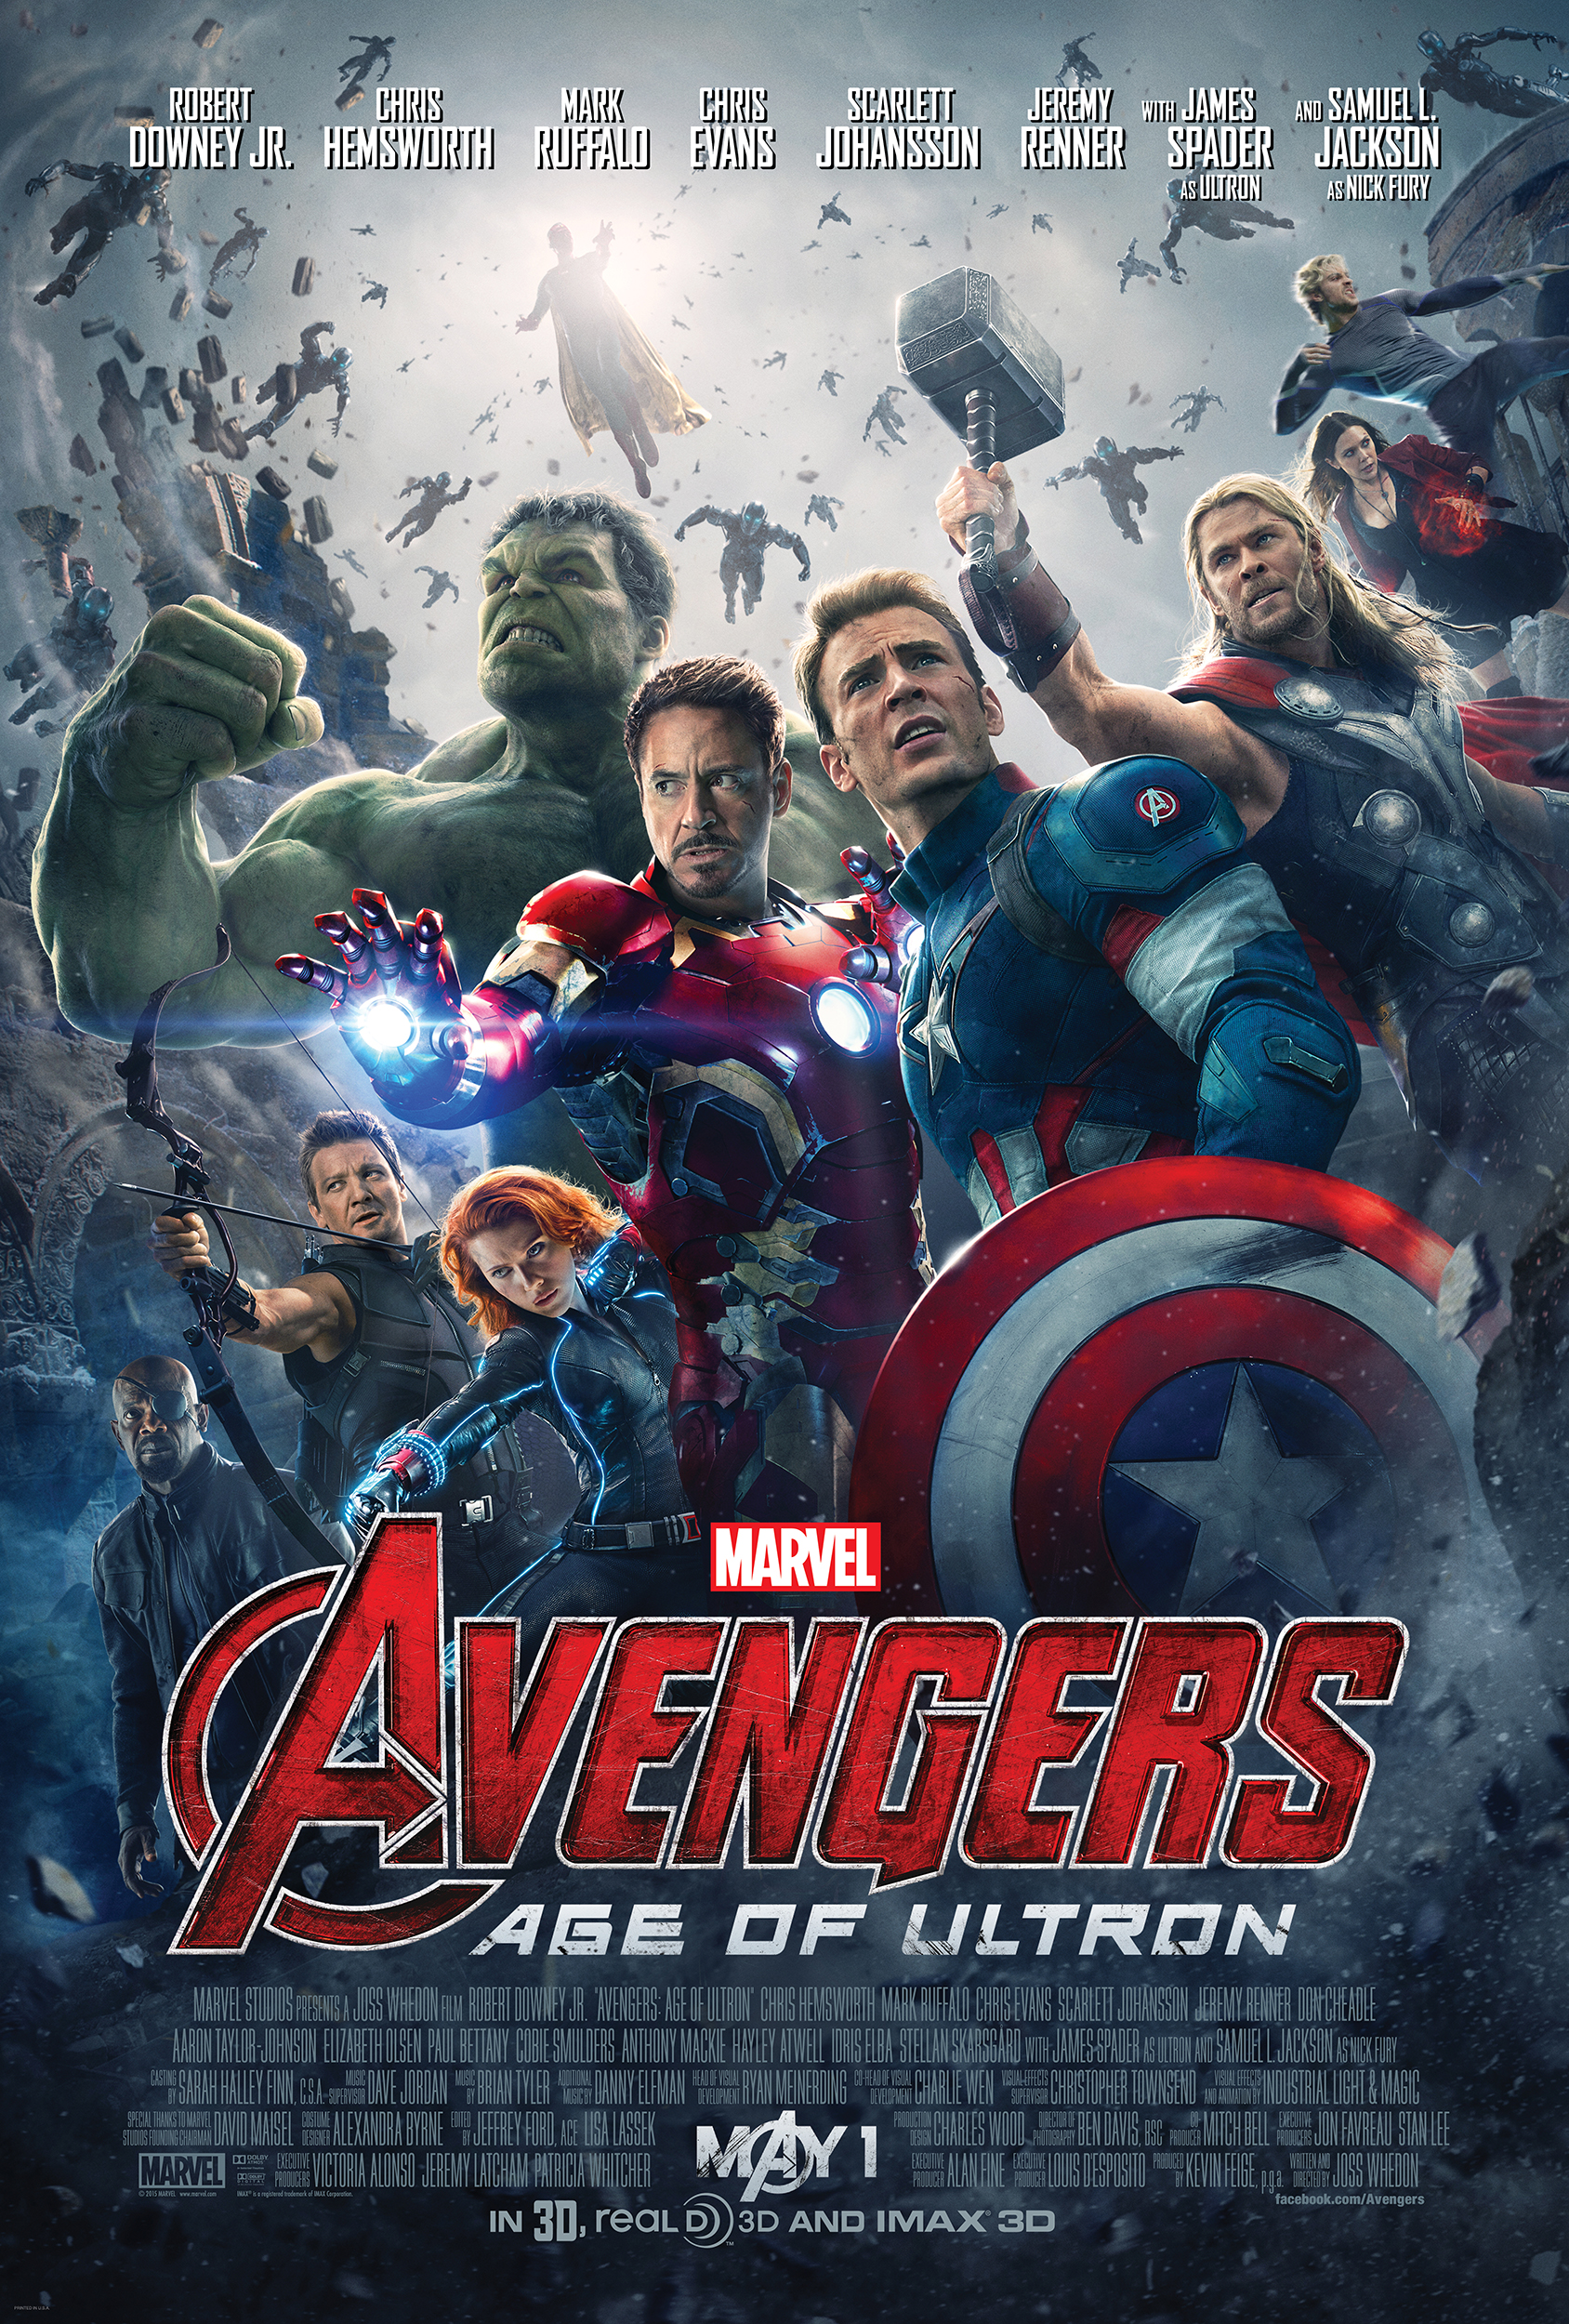 Trailer: Avengers: Age of Ultron – TV Spot 2